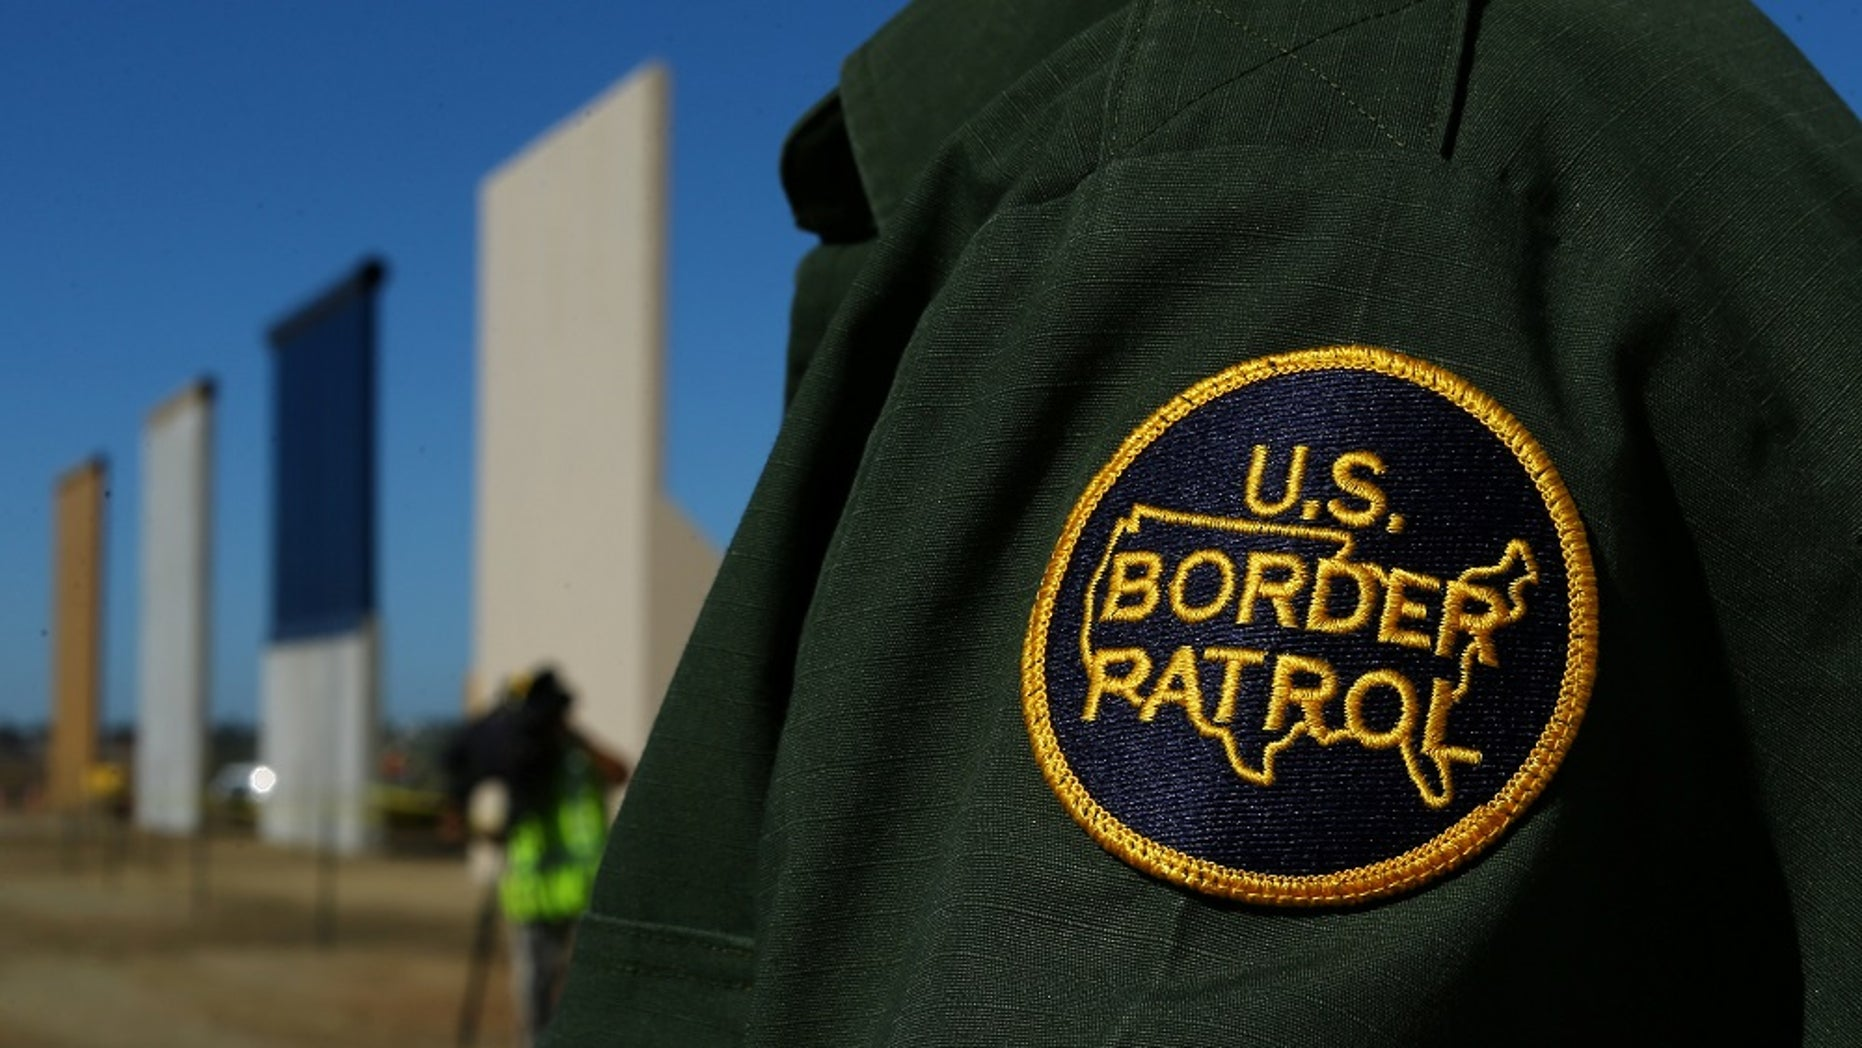 Federal Border Patrol officials reminded the public about the dangers of crossing into the U.S. illegally.